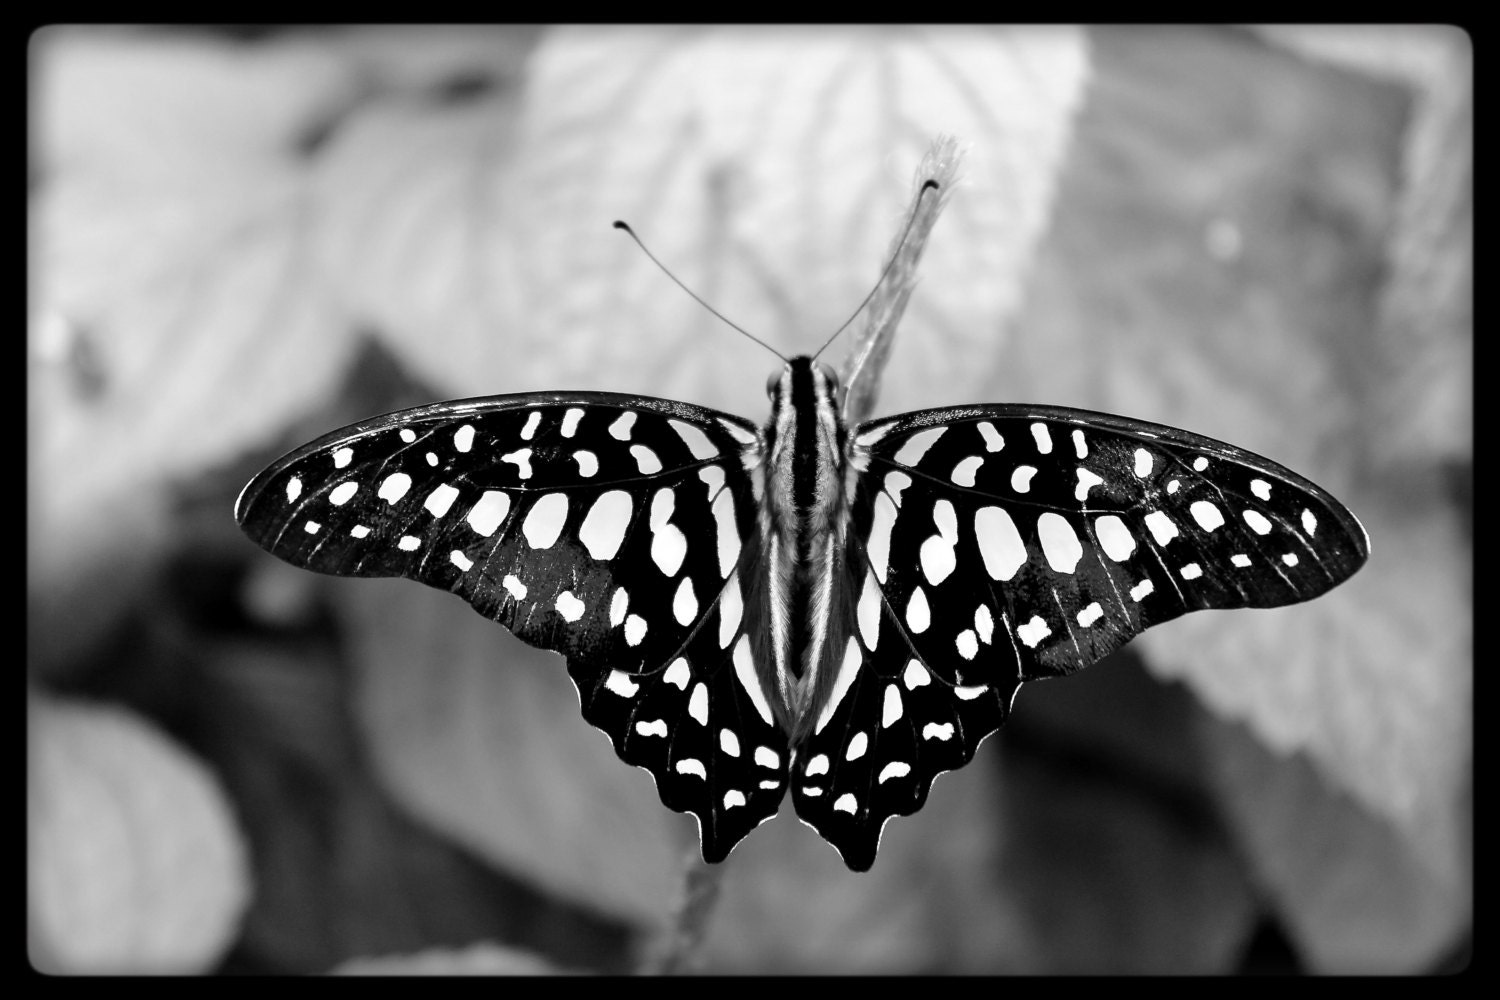 Butterfly black and white photography close up butterfly photo original photo art butterfly butterflies insects insect photography